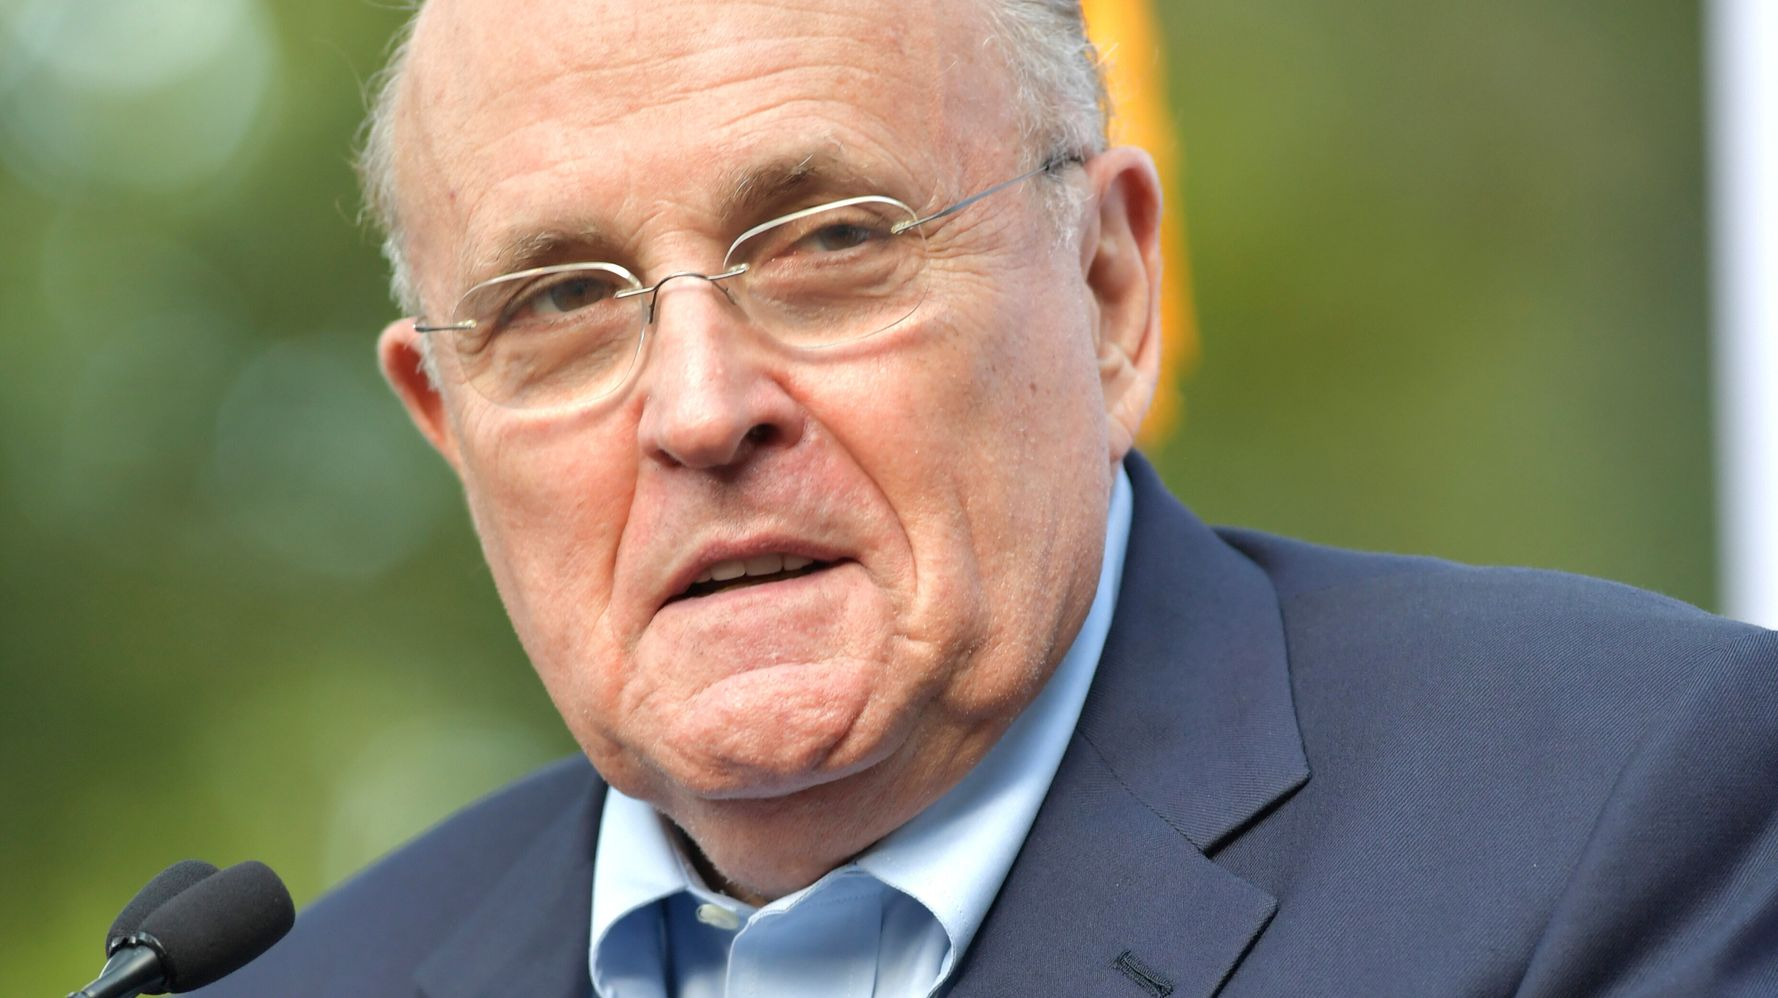 Giuliani Repeatedly Urged Trump To Expel Turkish Cleric, A 'Top Priority' Of Erdogan: Report